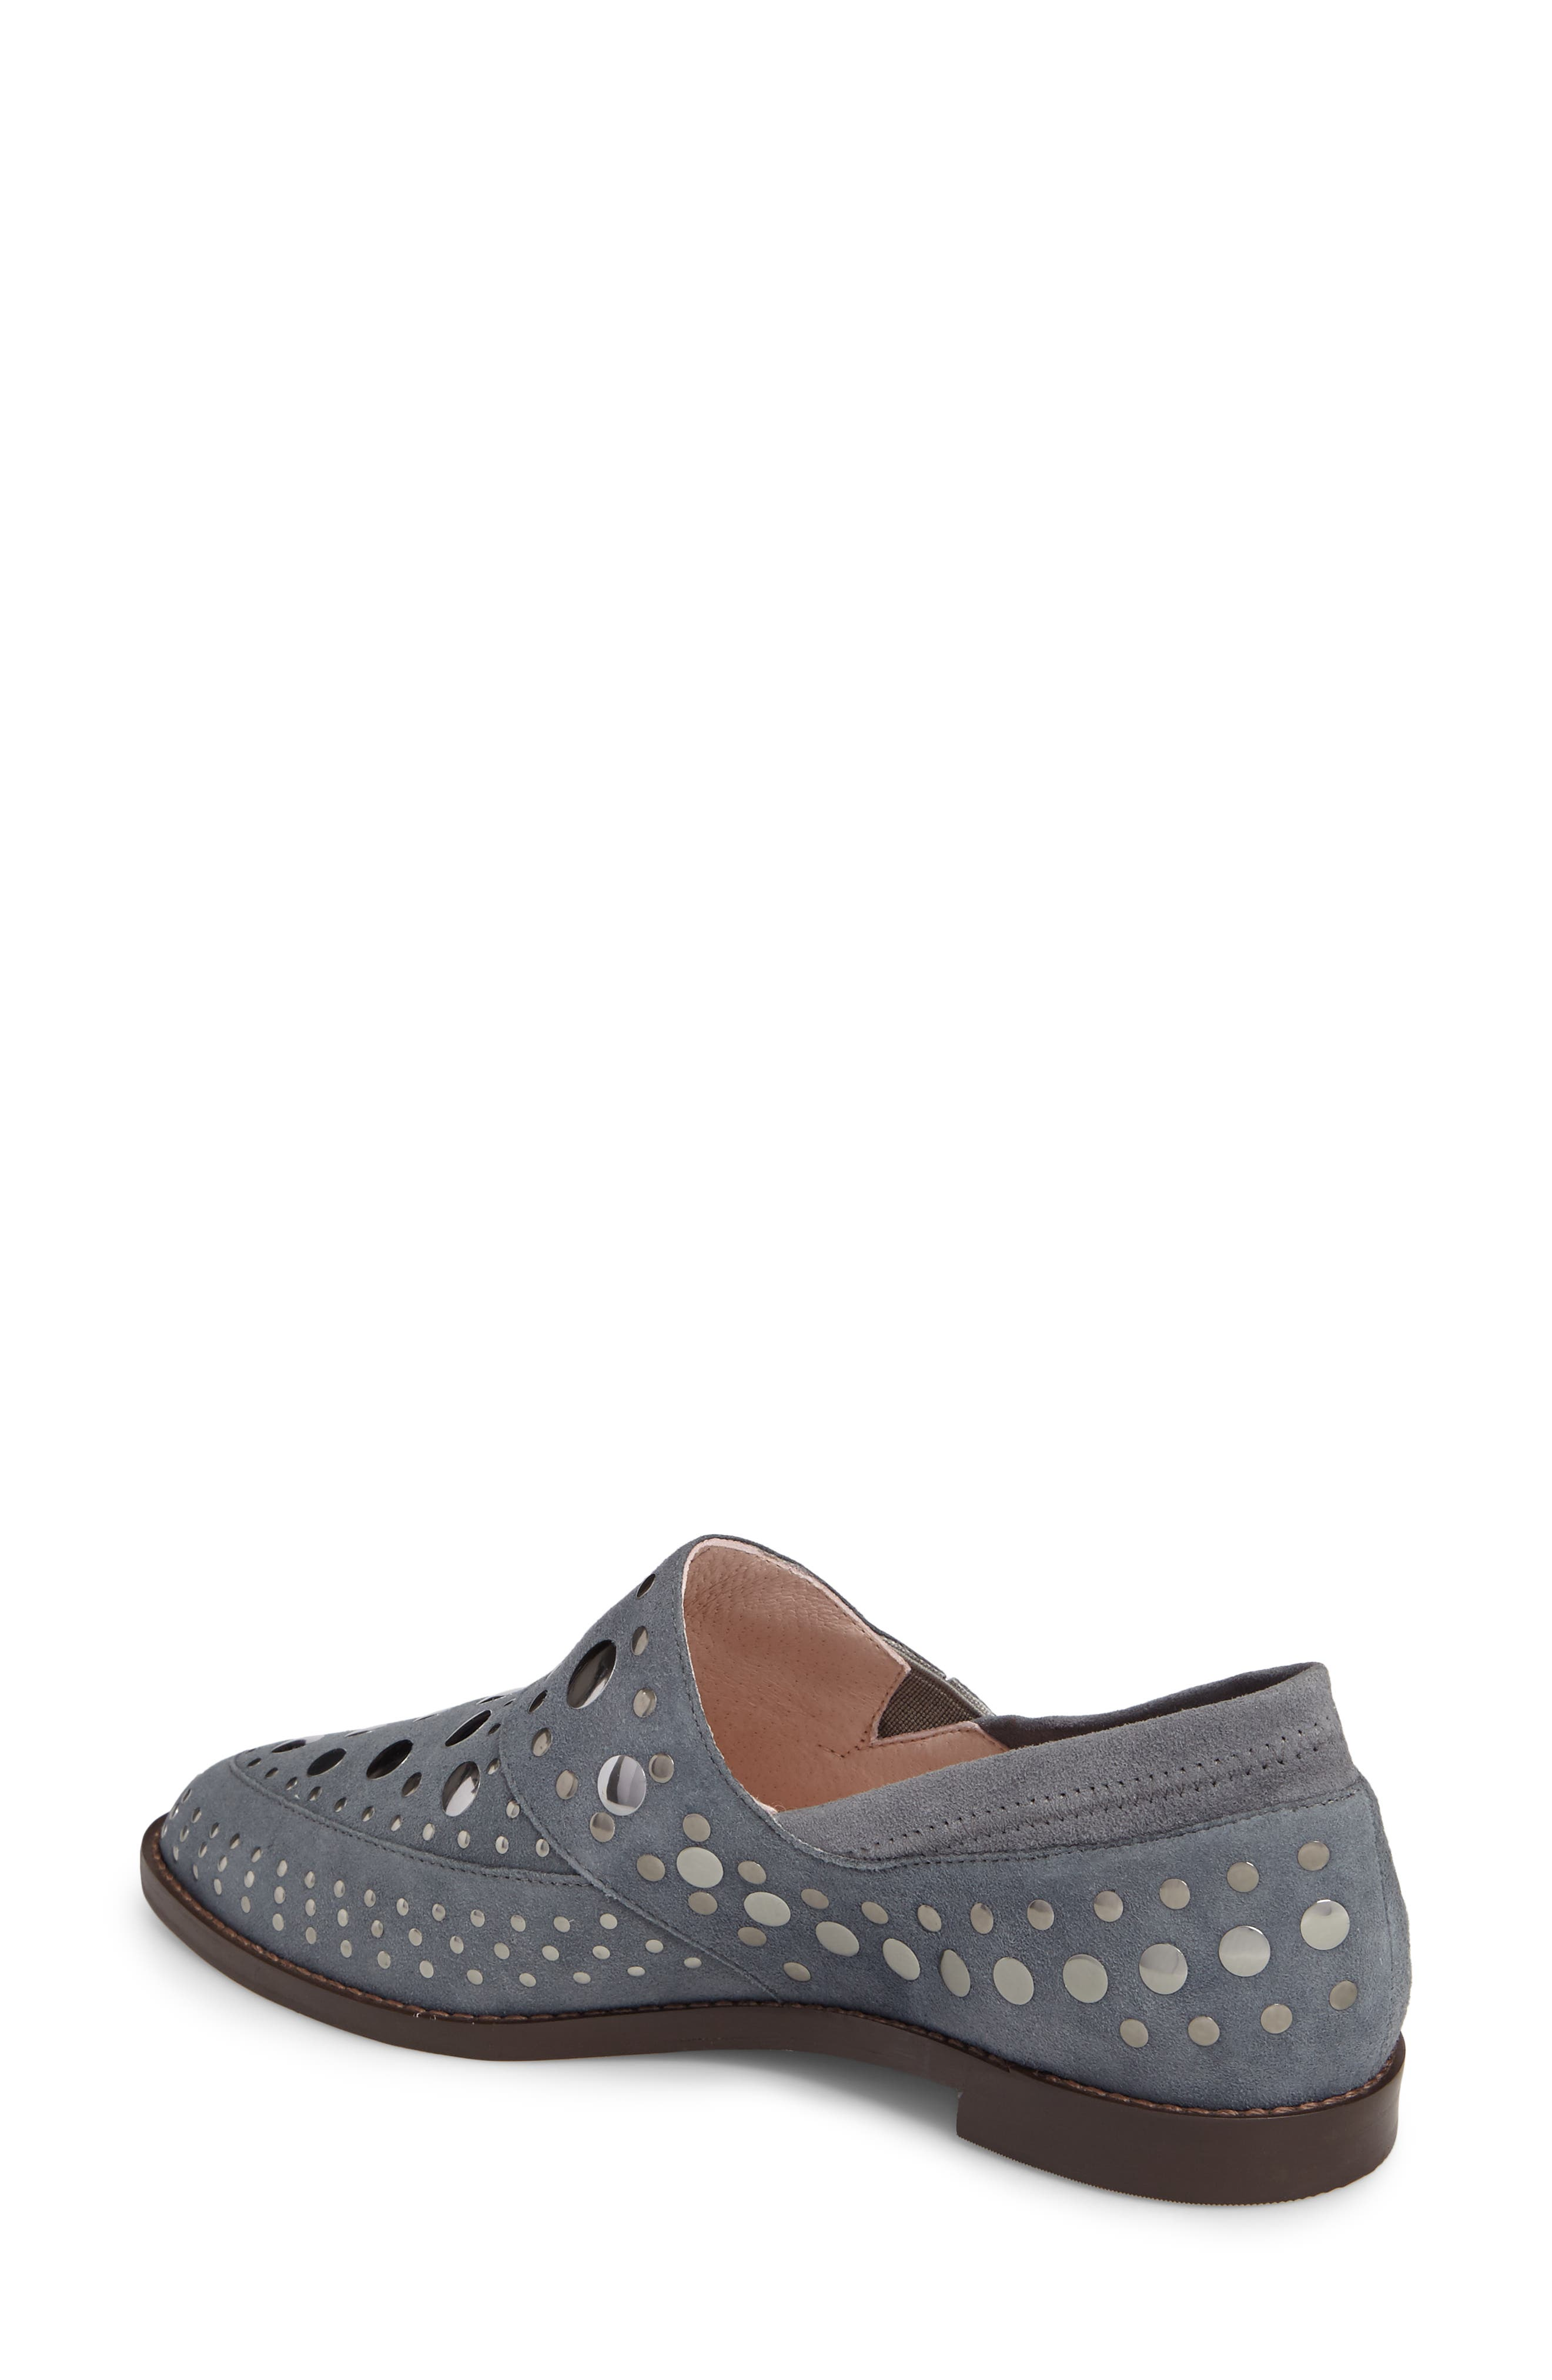 Ping Studded Loafer,                             Alternate thumbnail 5, color,